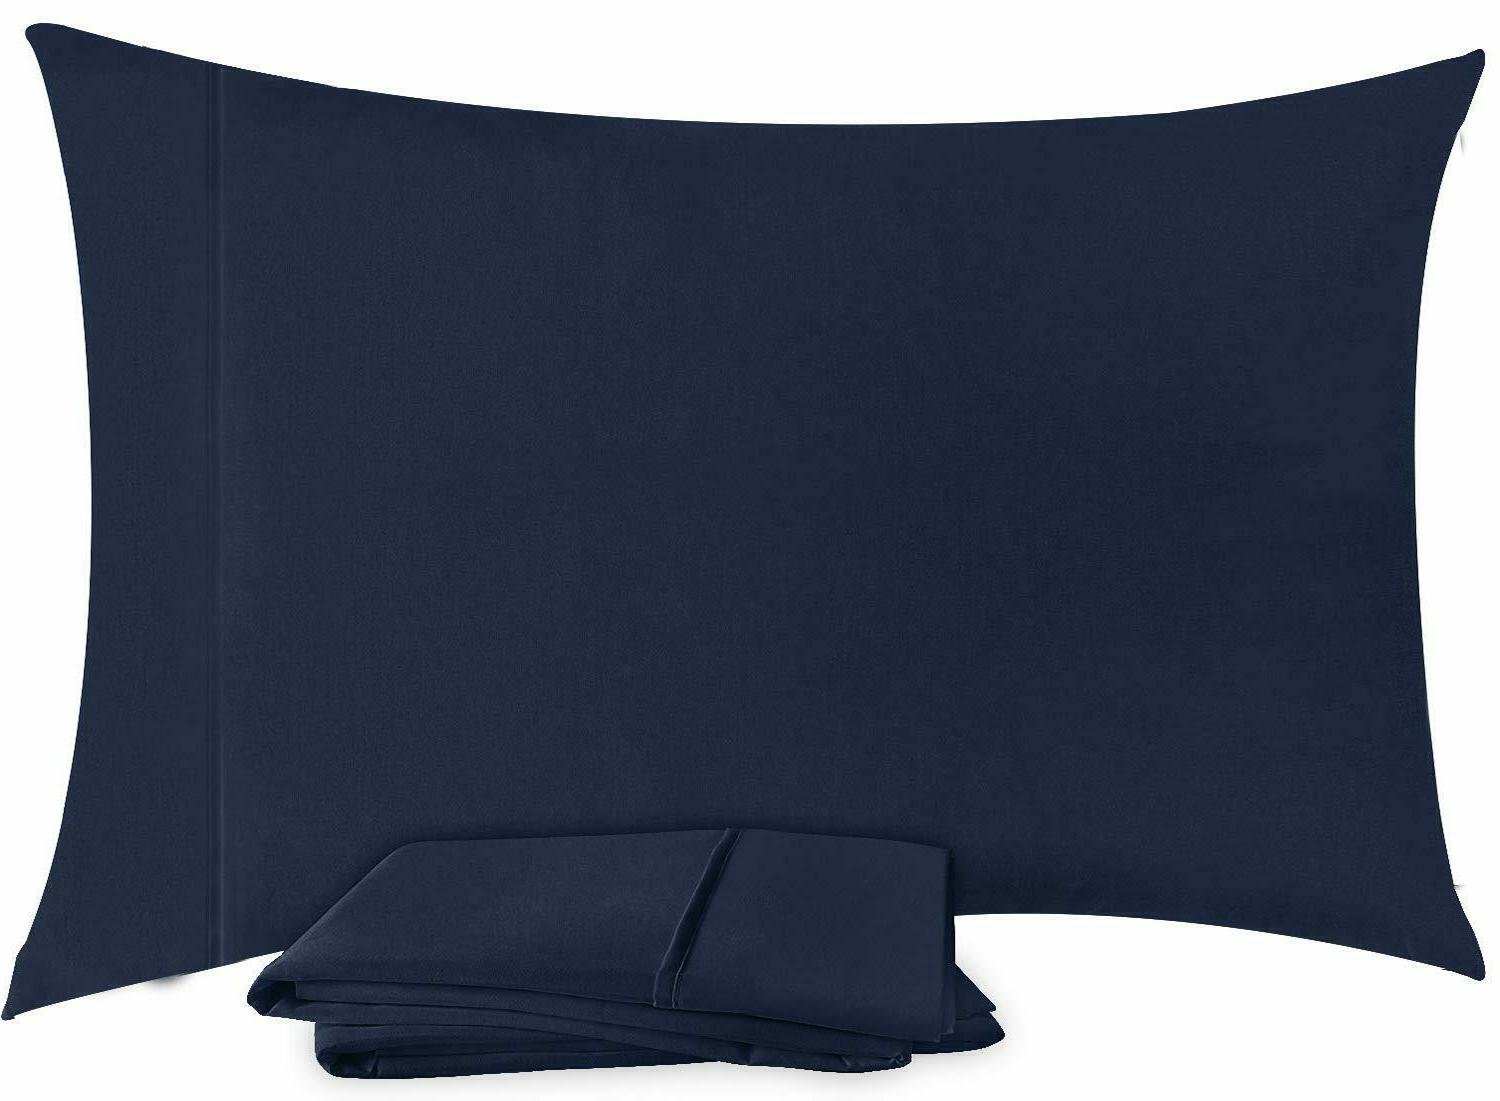 Utopia Pillowcases 2 Pack, -Brushed Microfiber Covers